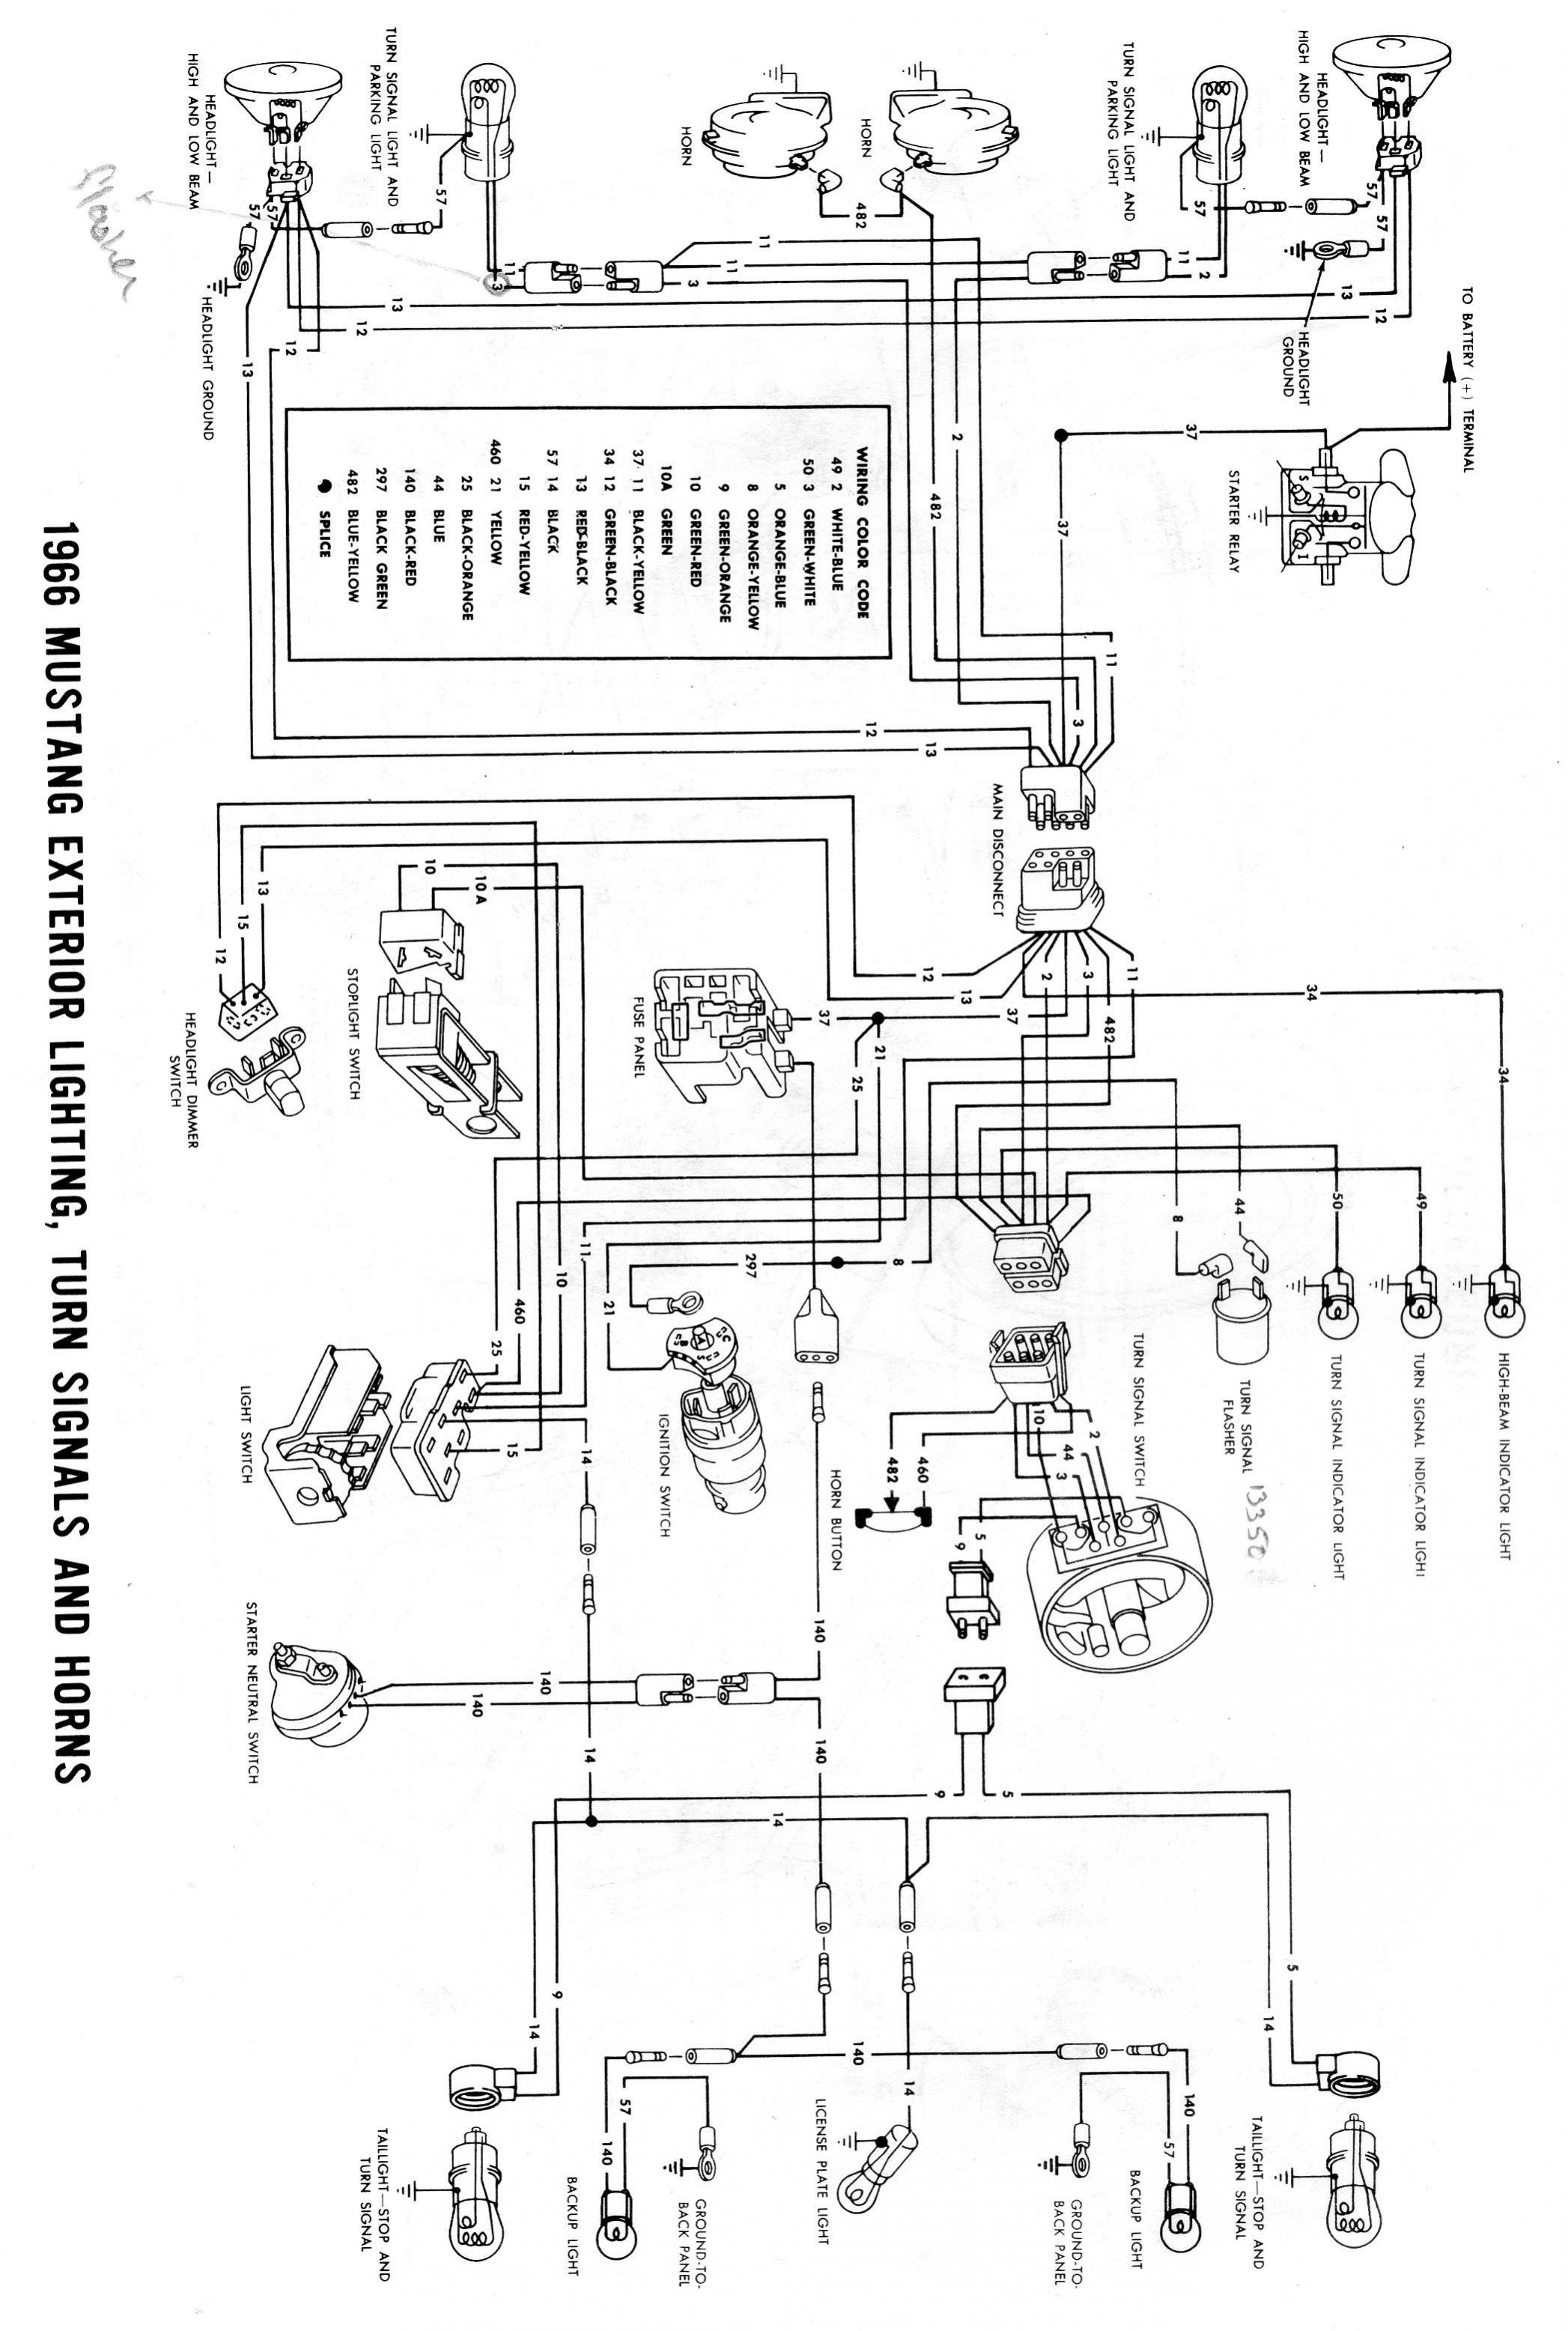 1970 Mustang Wiring Schematic For Headlights 04 Ford Fuse Diagram Library 03 Box Turn Signal Trusted U2022 Rh Justwiringdiagram Today 2004